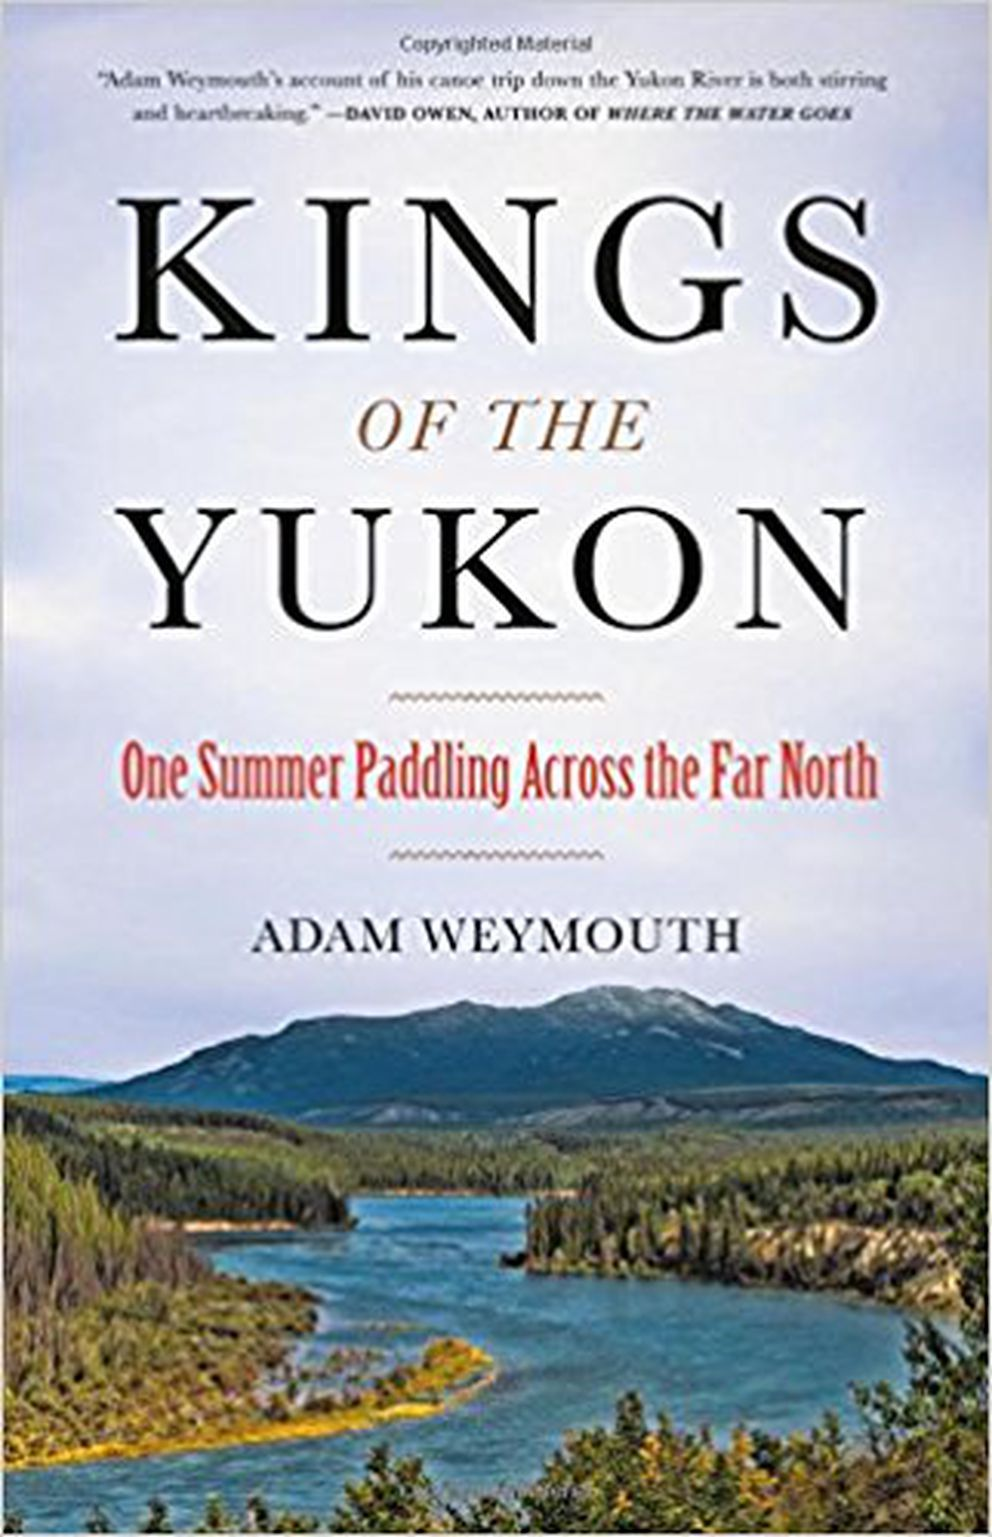 """""""Kings of the Yukon: One Summer Paddling Across the Far North,"""" by Adam Weymouth"""